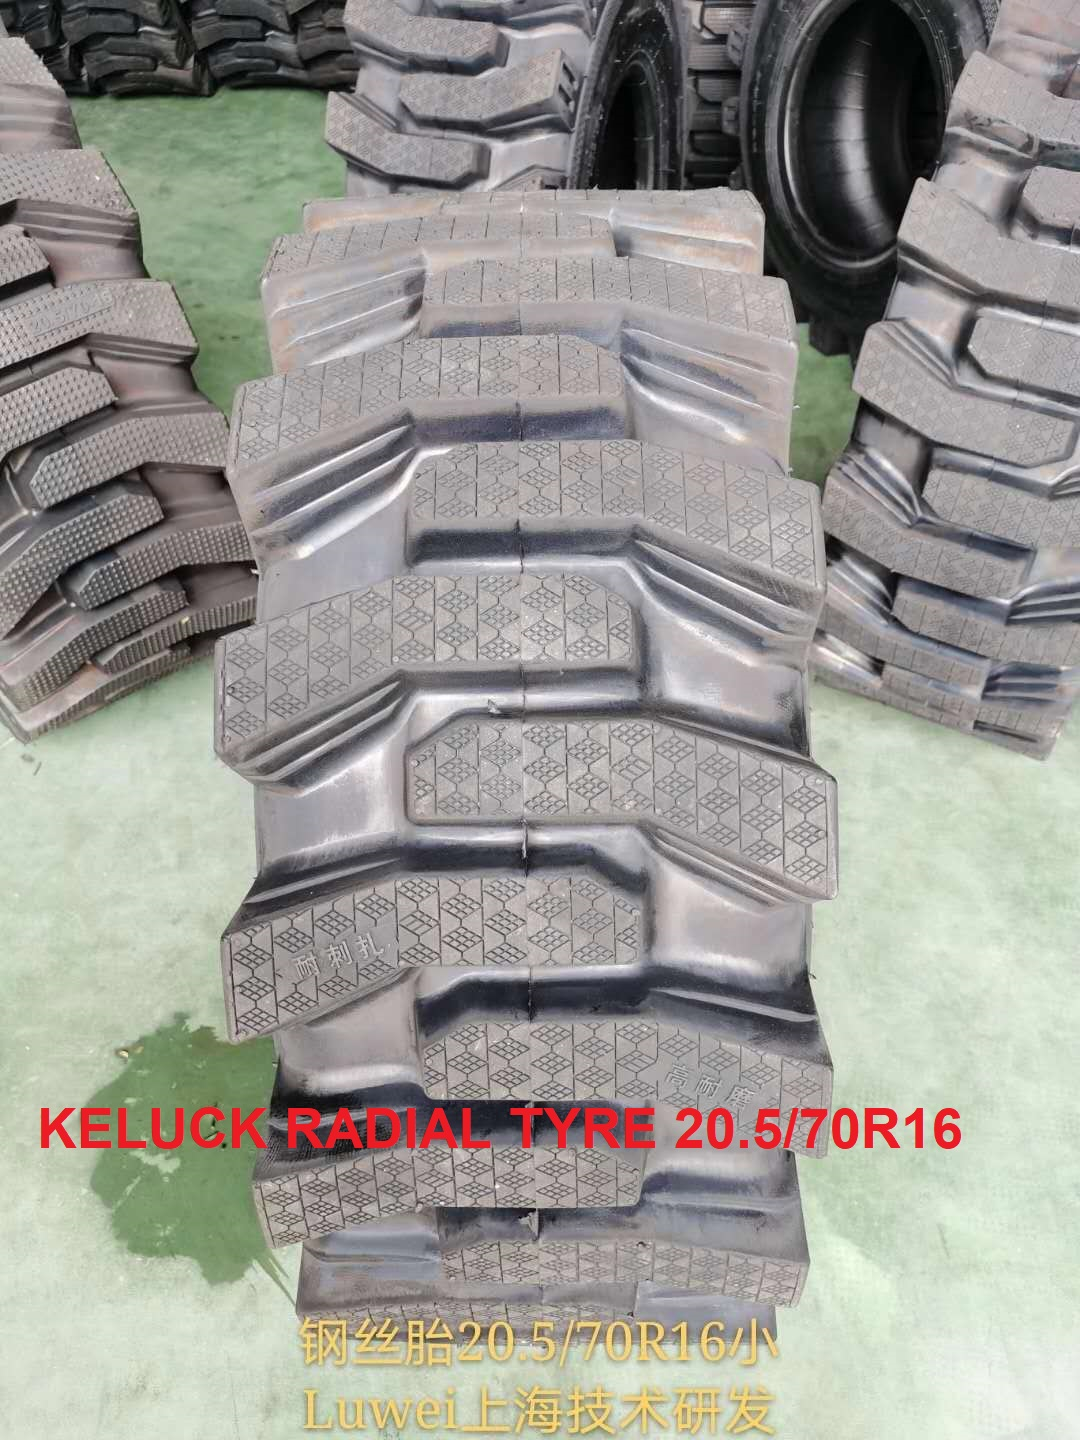 radial small loader tyres 20.5/70R16 16/70R20 16/70R24